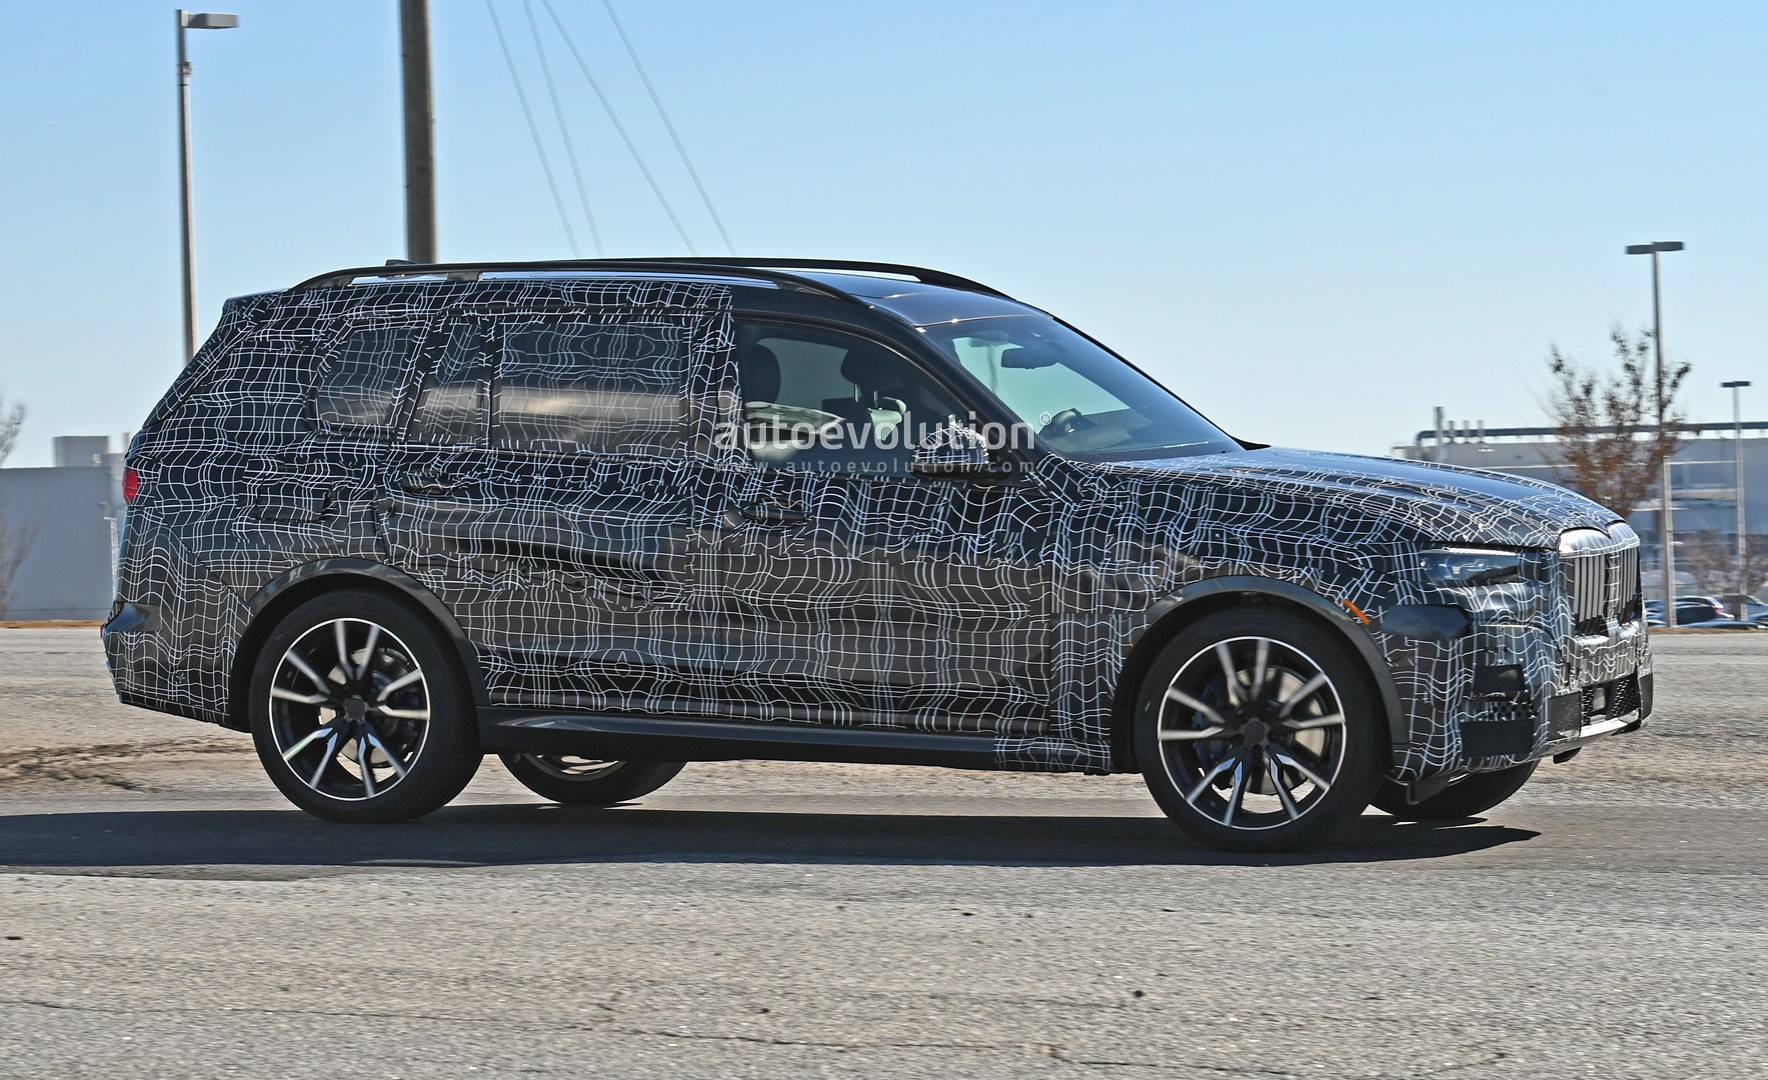 Spyshots 2019 Bmw X7 Looks Production Ready With Blue Brakes Autoevolution